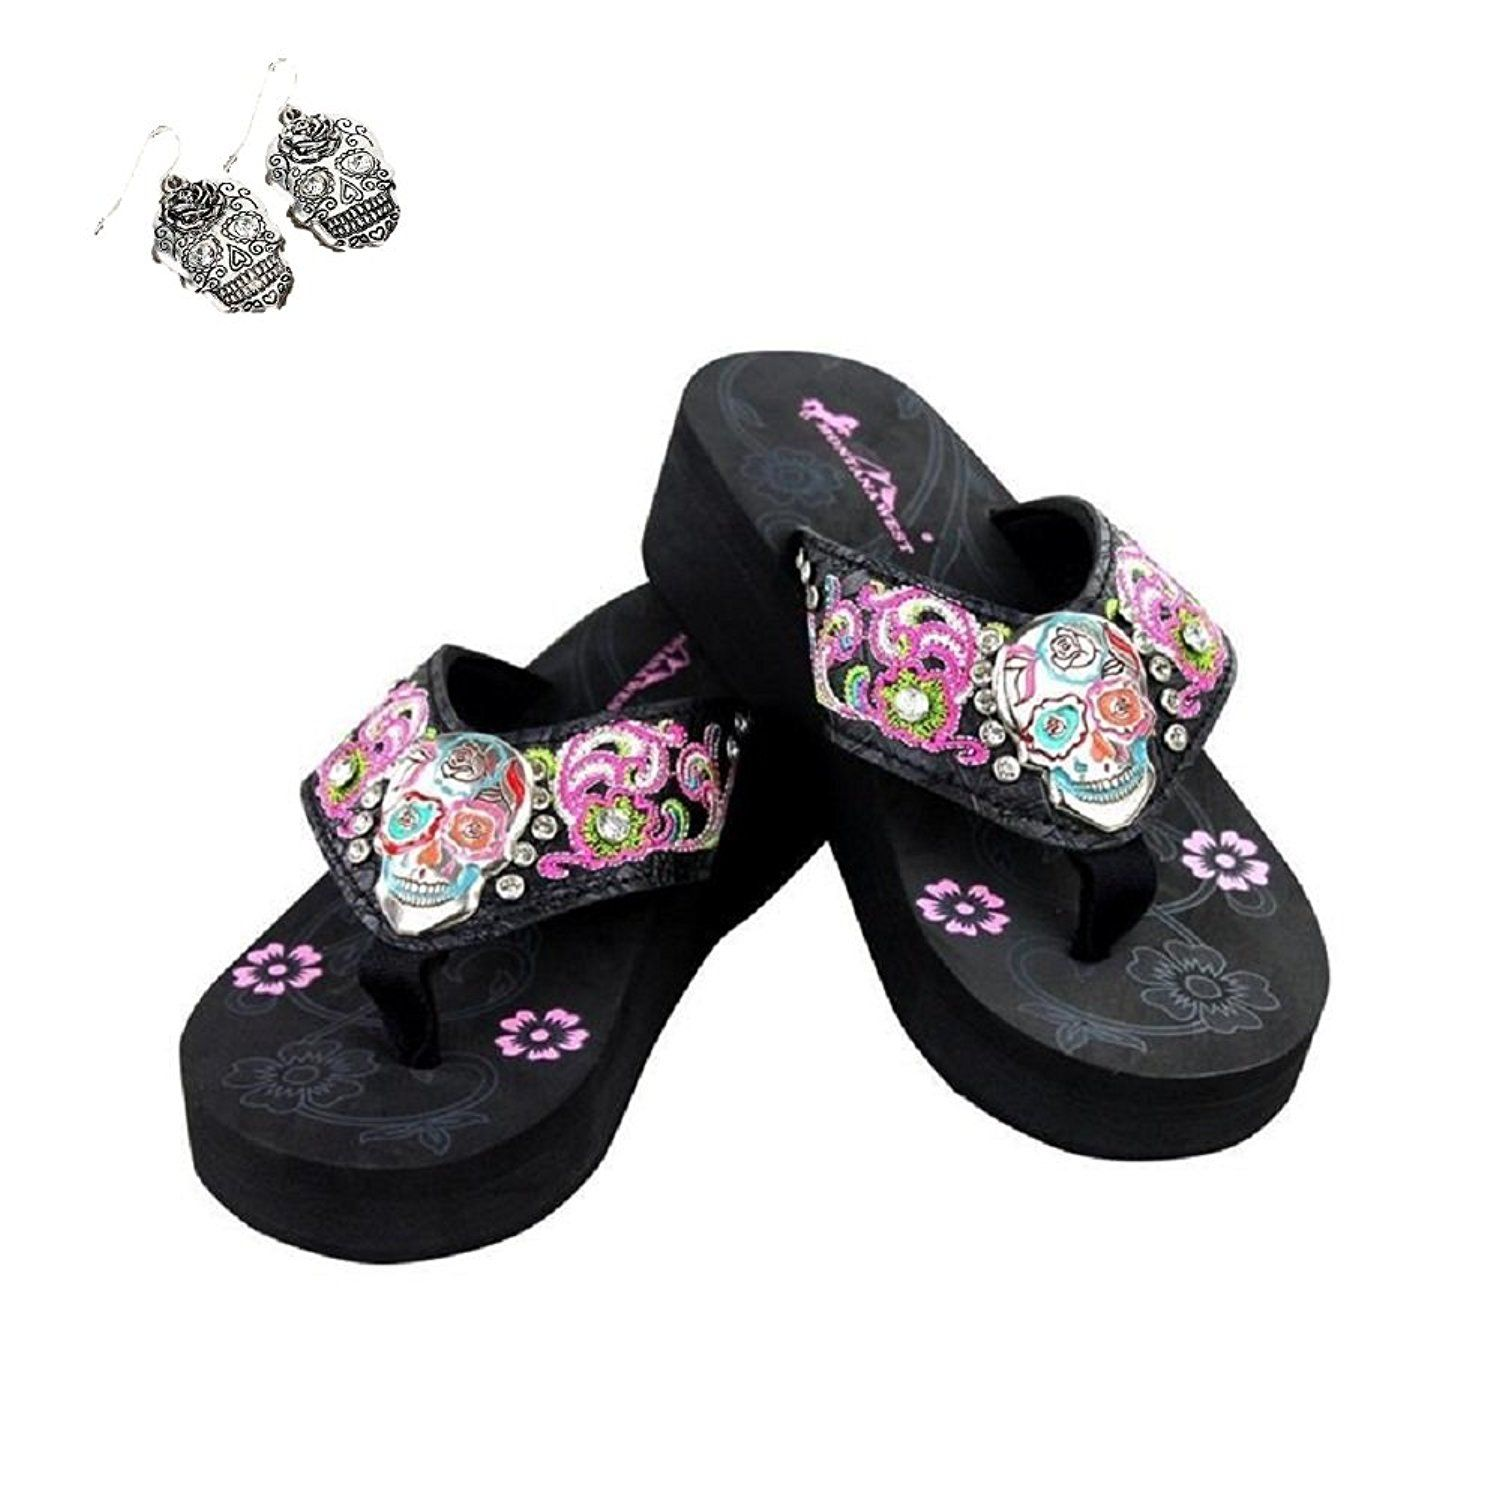 af8421e5a0e3 Montana west rhinestone sugar skull flower flip flops sandals shoes  earrings read jpg 1500x1500 Skull baby